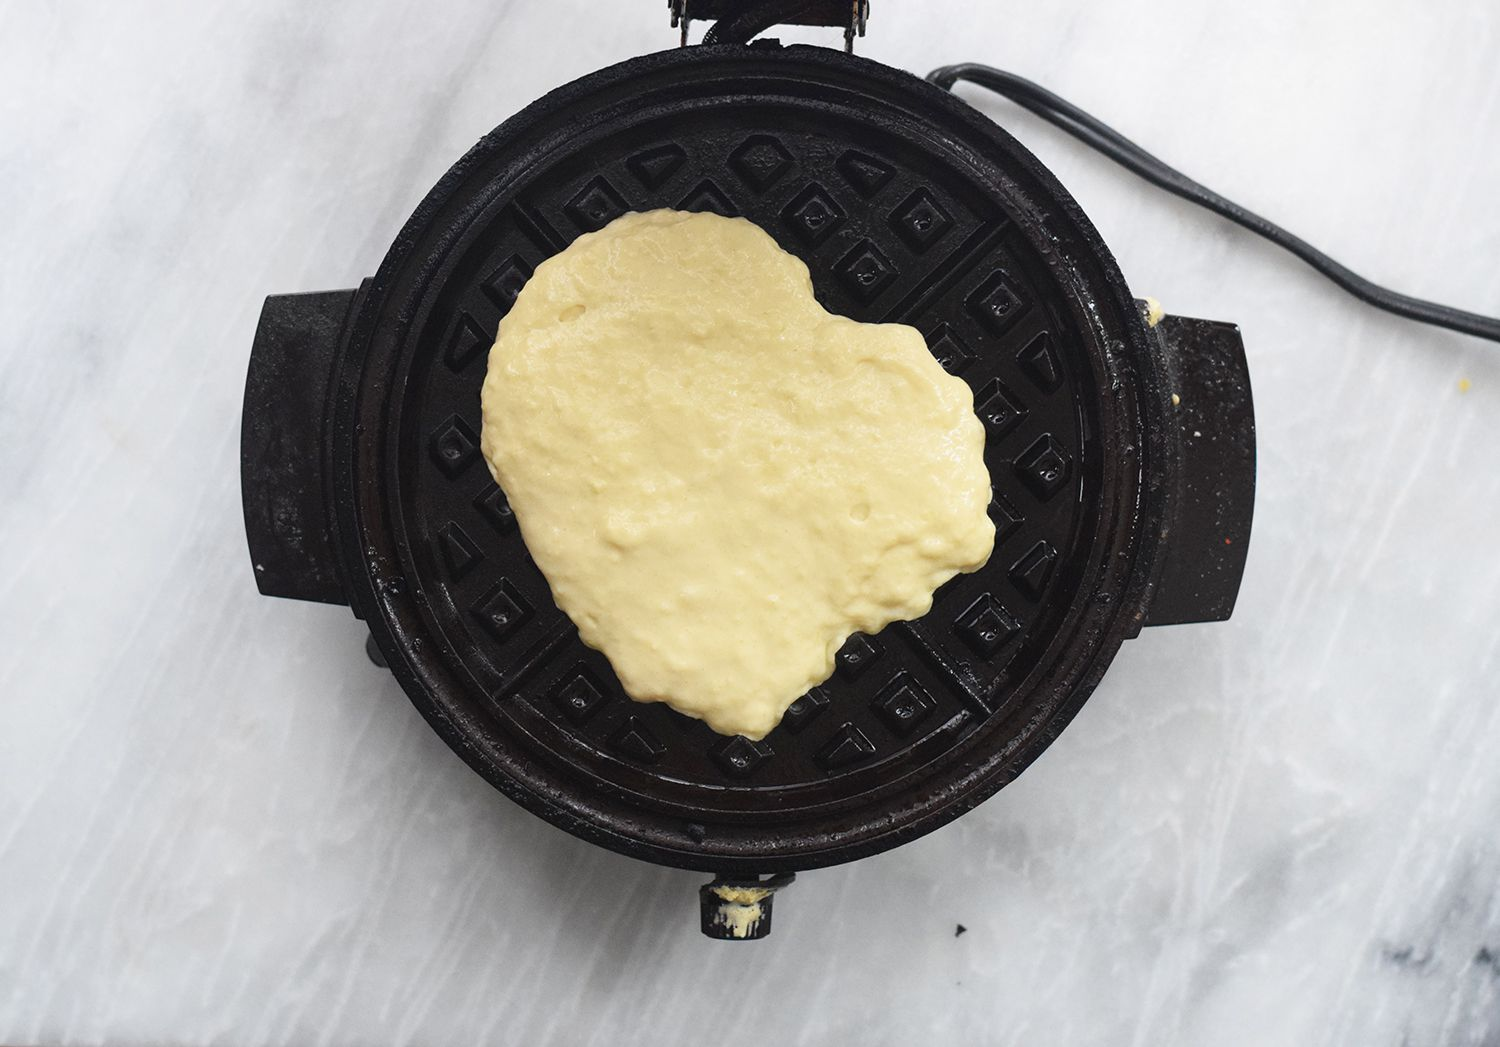 Put some of the batter in your waffle iron